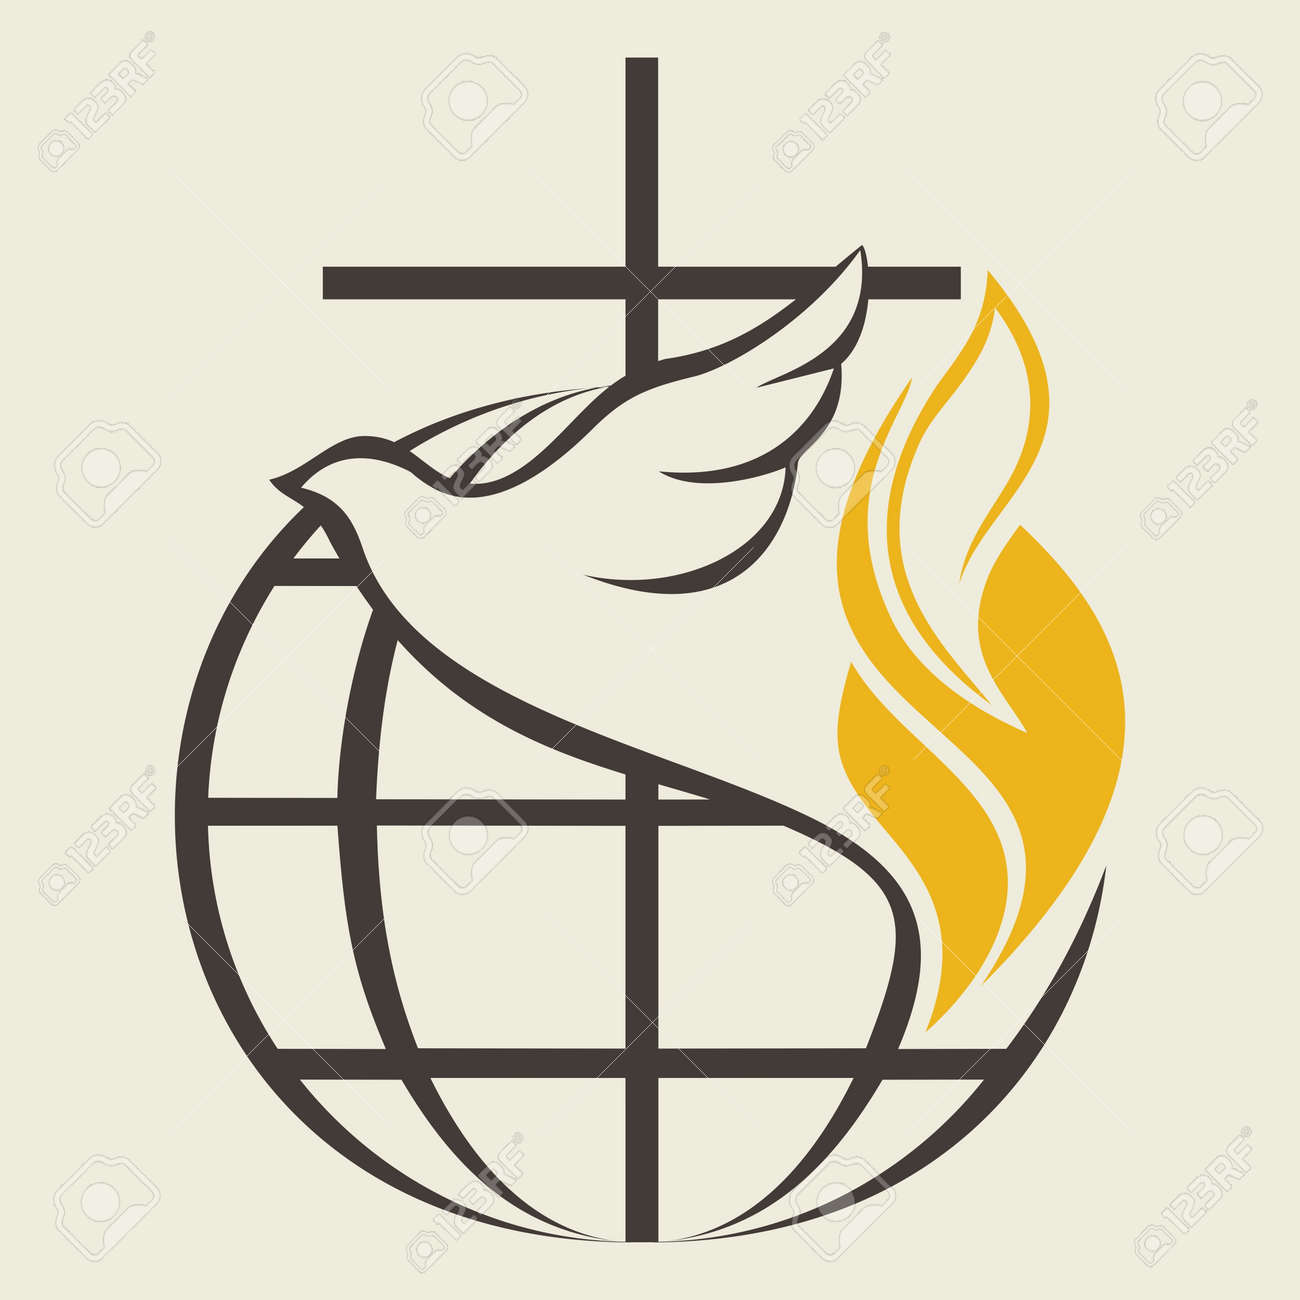 Church logo globe holy spirit dove cross flame pentecost church logo globe holy spirit dove cross flame pentecost stock altavistaventures Choice Image